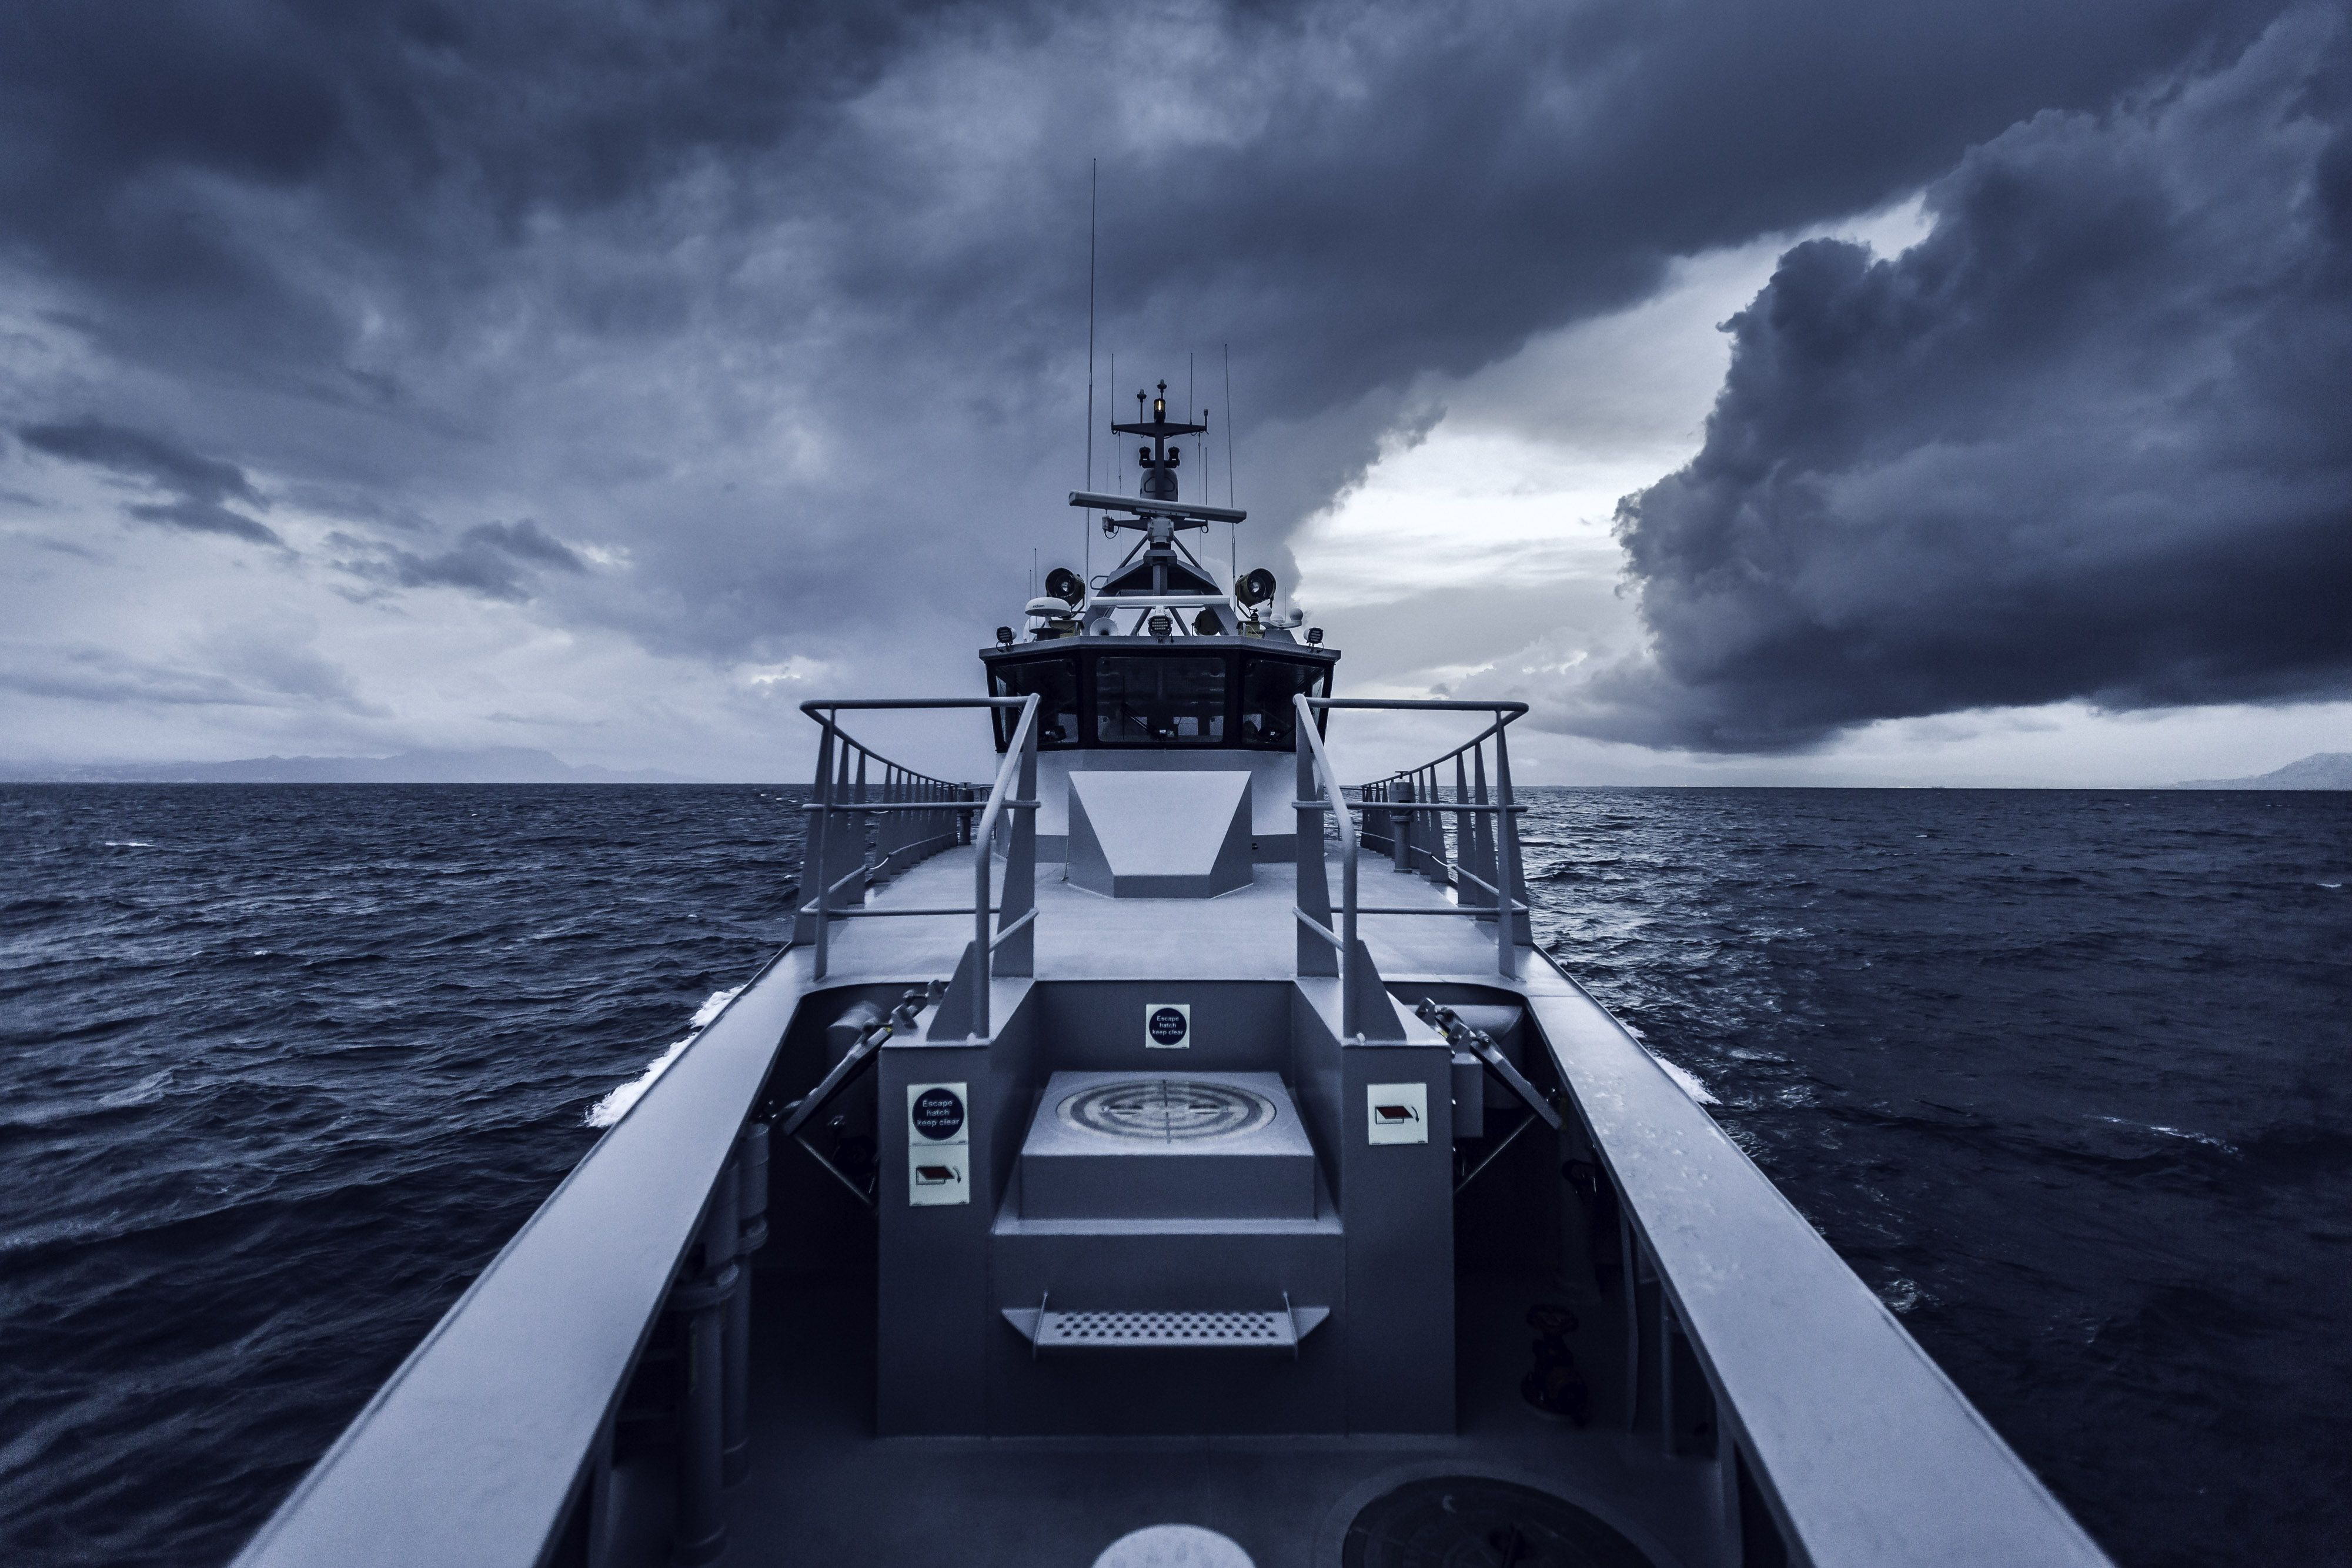 View From The Bow Of Sea Shepherd S New High Speed Patrol Vessel The Mv Ocean Warrior Image Simon Ager In 2020 Sea Shepherd Marine Ecosystem Shark Fishing